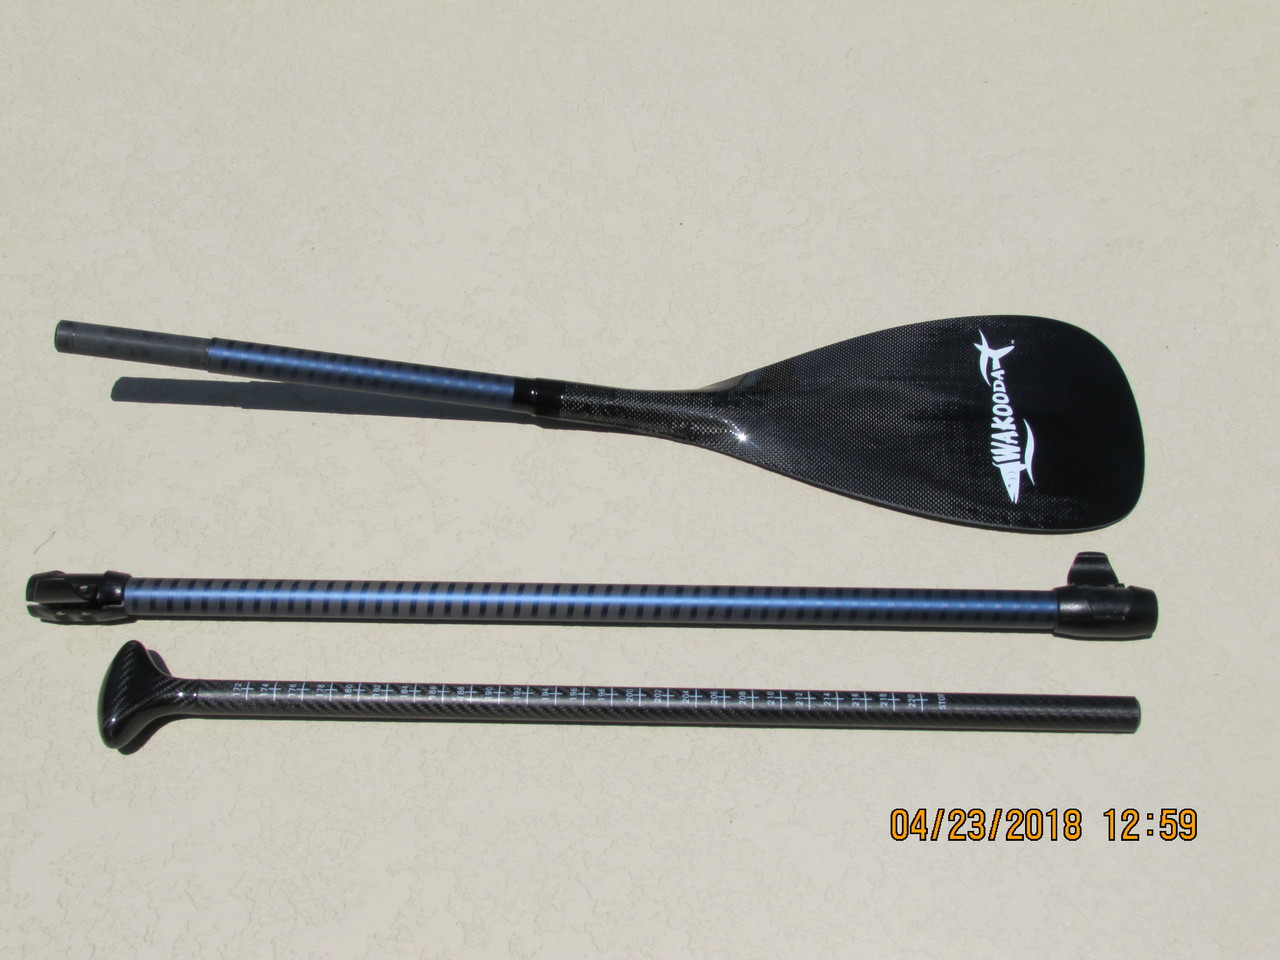 e8bf225f7 Three pieces to this adjustable paddle allow you to adjust the paddle from  68